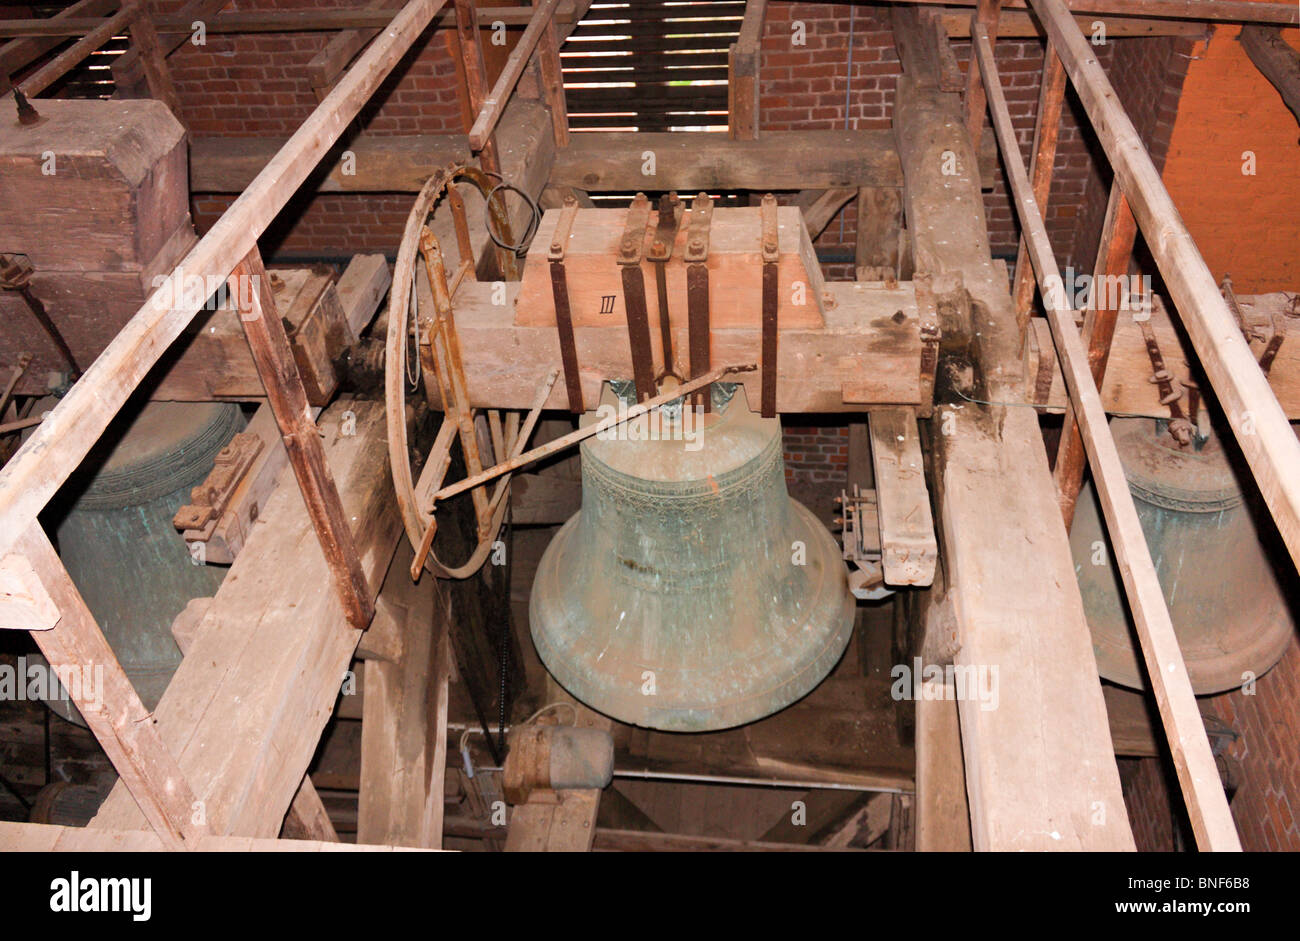 Church bell with wooden support structure, Wismar, Germany - Stock Image